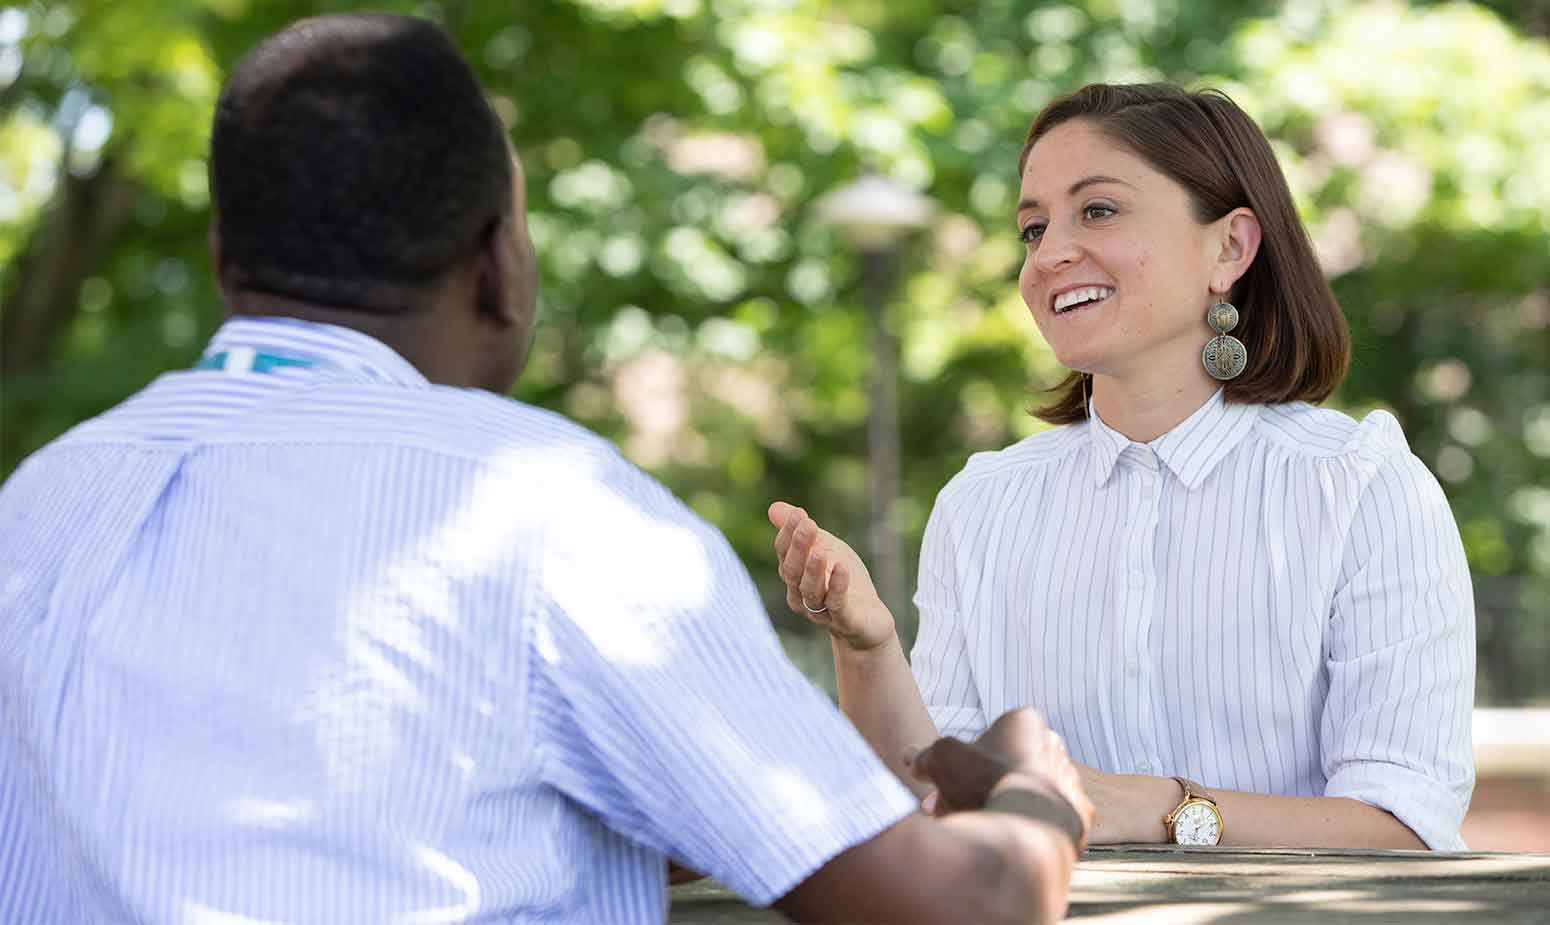 Young woman speaks with clinician